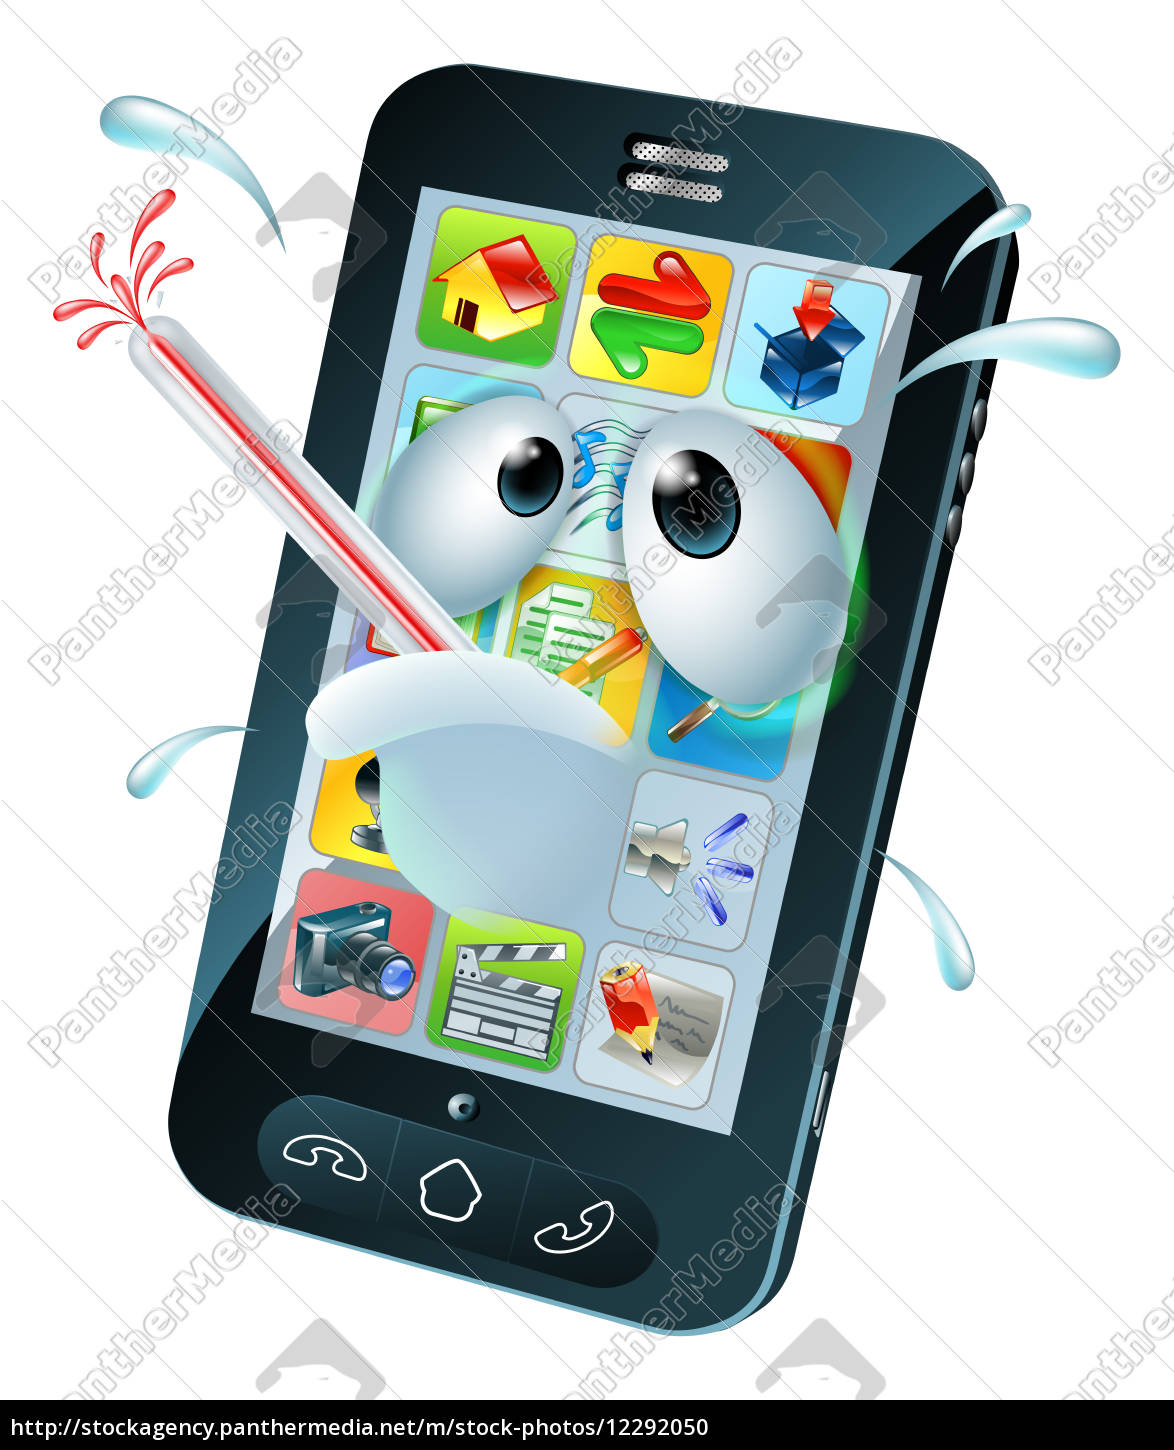 Virus Mobile Cell Phone Cartoon Royalty Free Image 12292050 Panthermedia Stock Agency